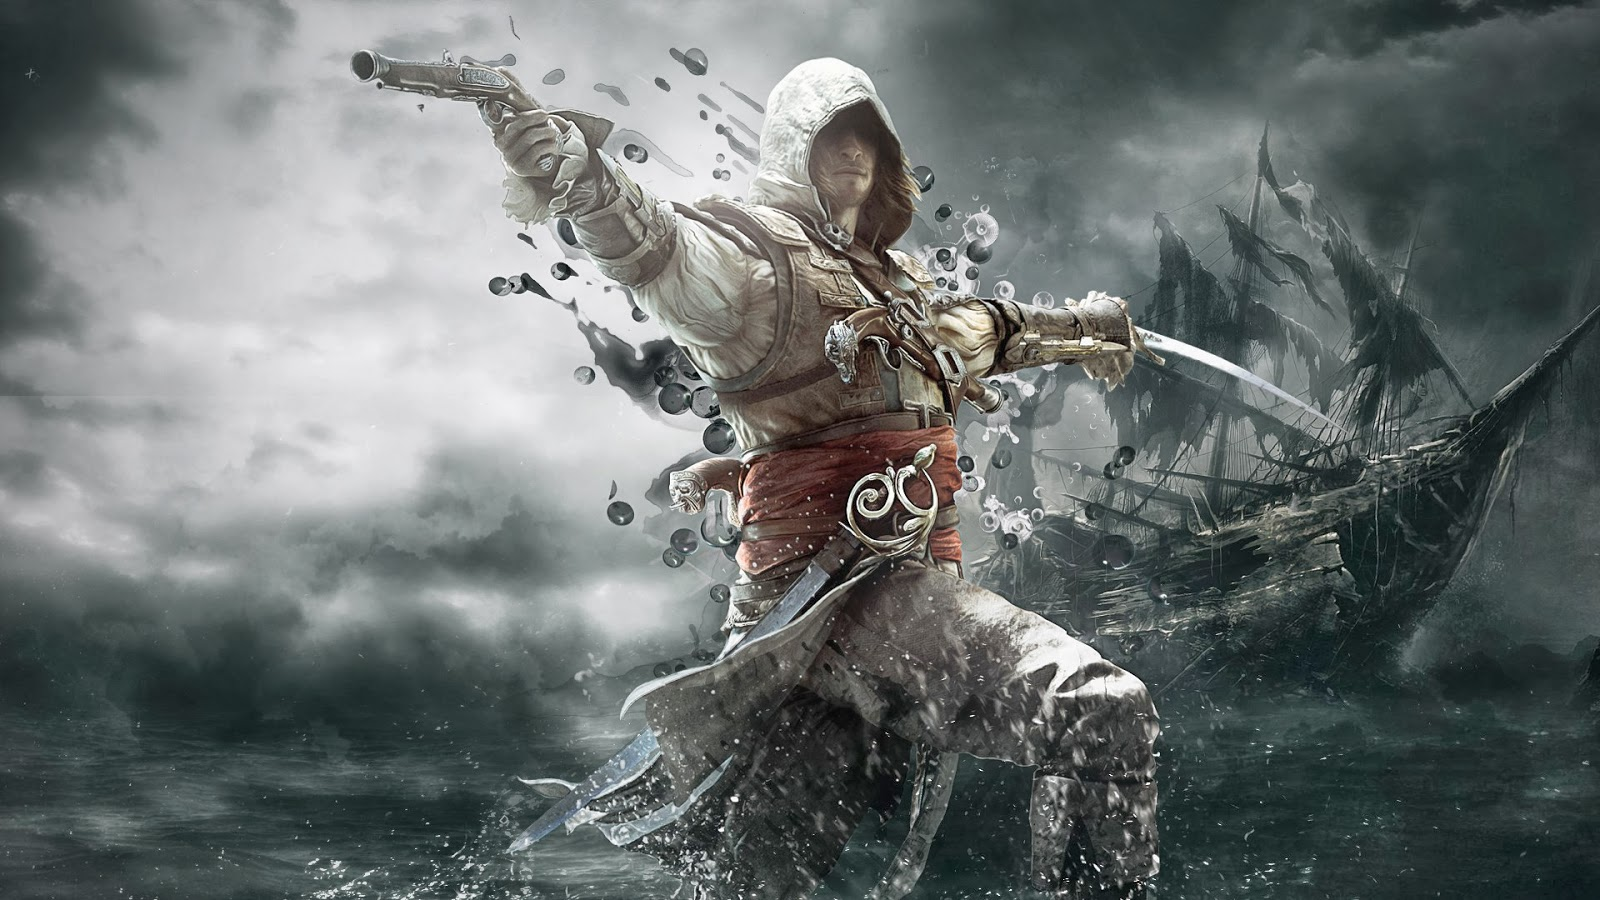 Assassin's Creed IV Black Flag HD Wallpapers - Walls720